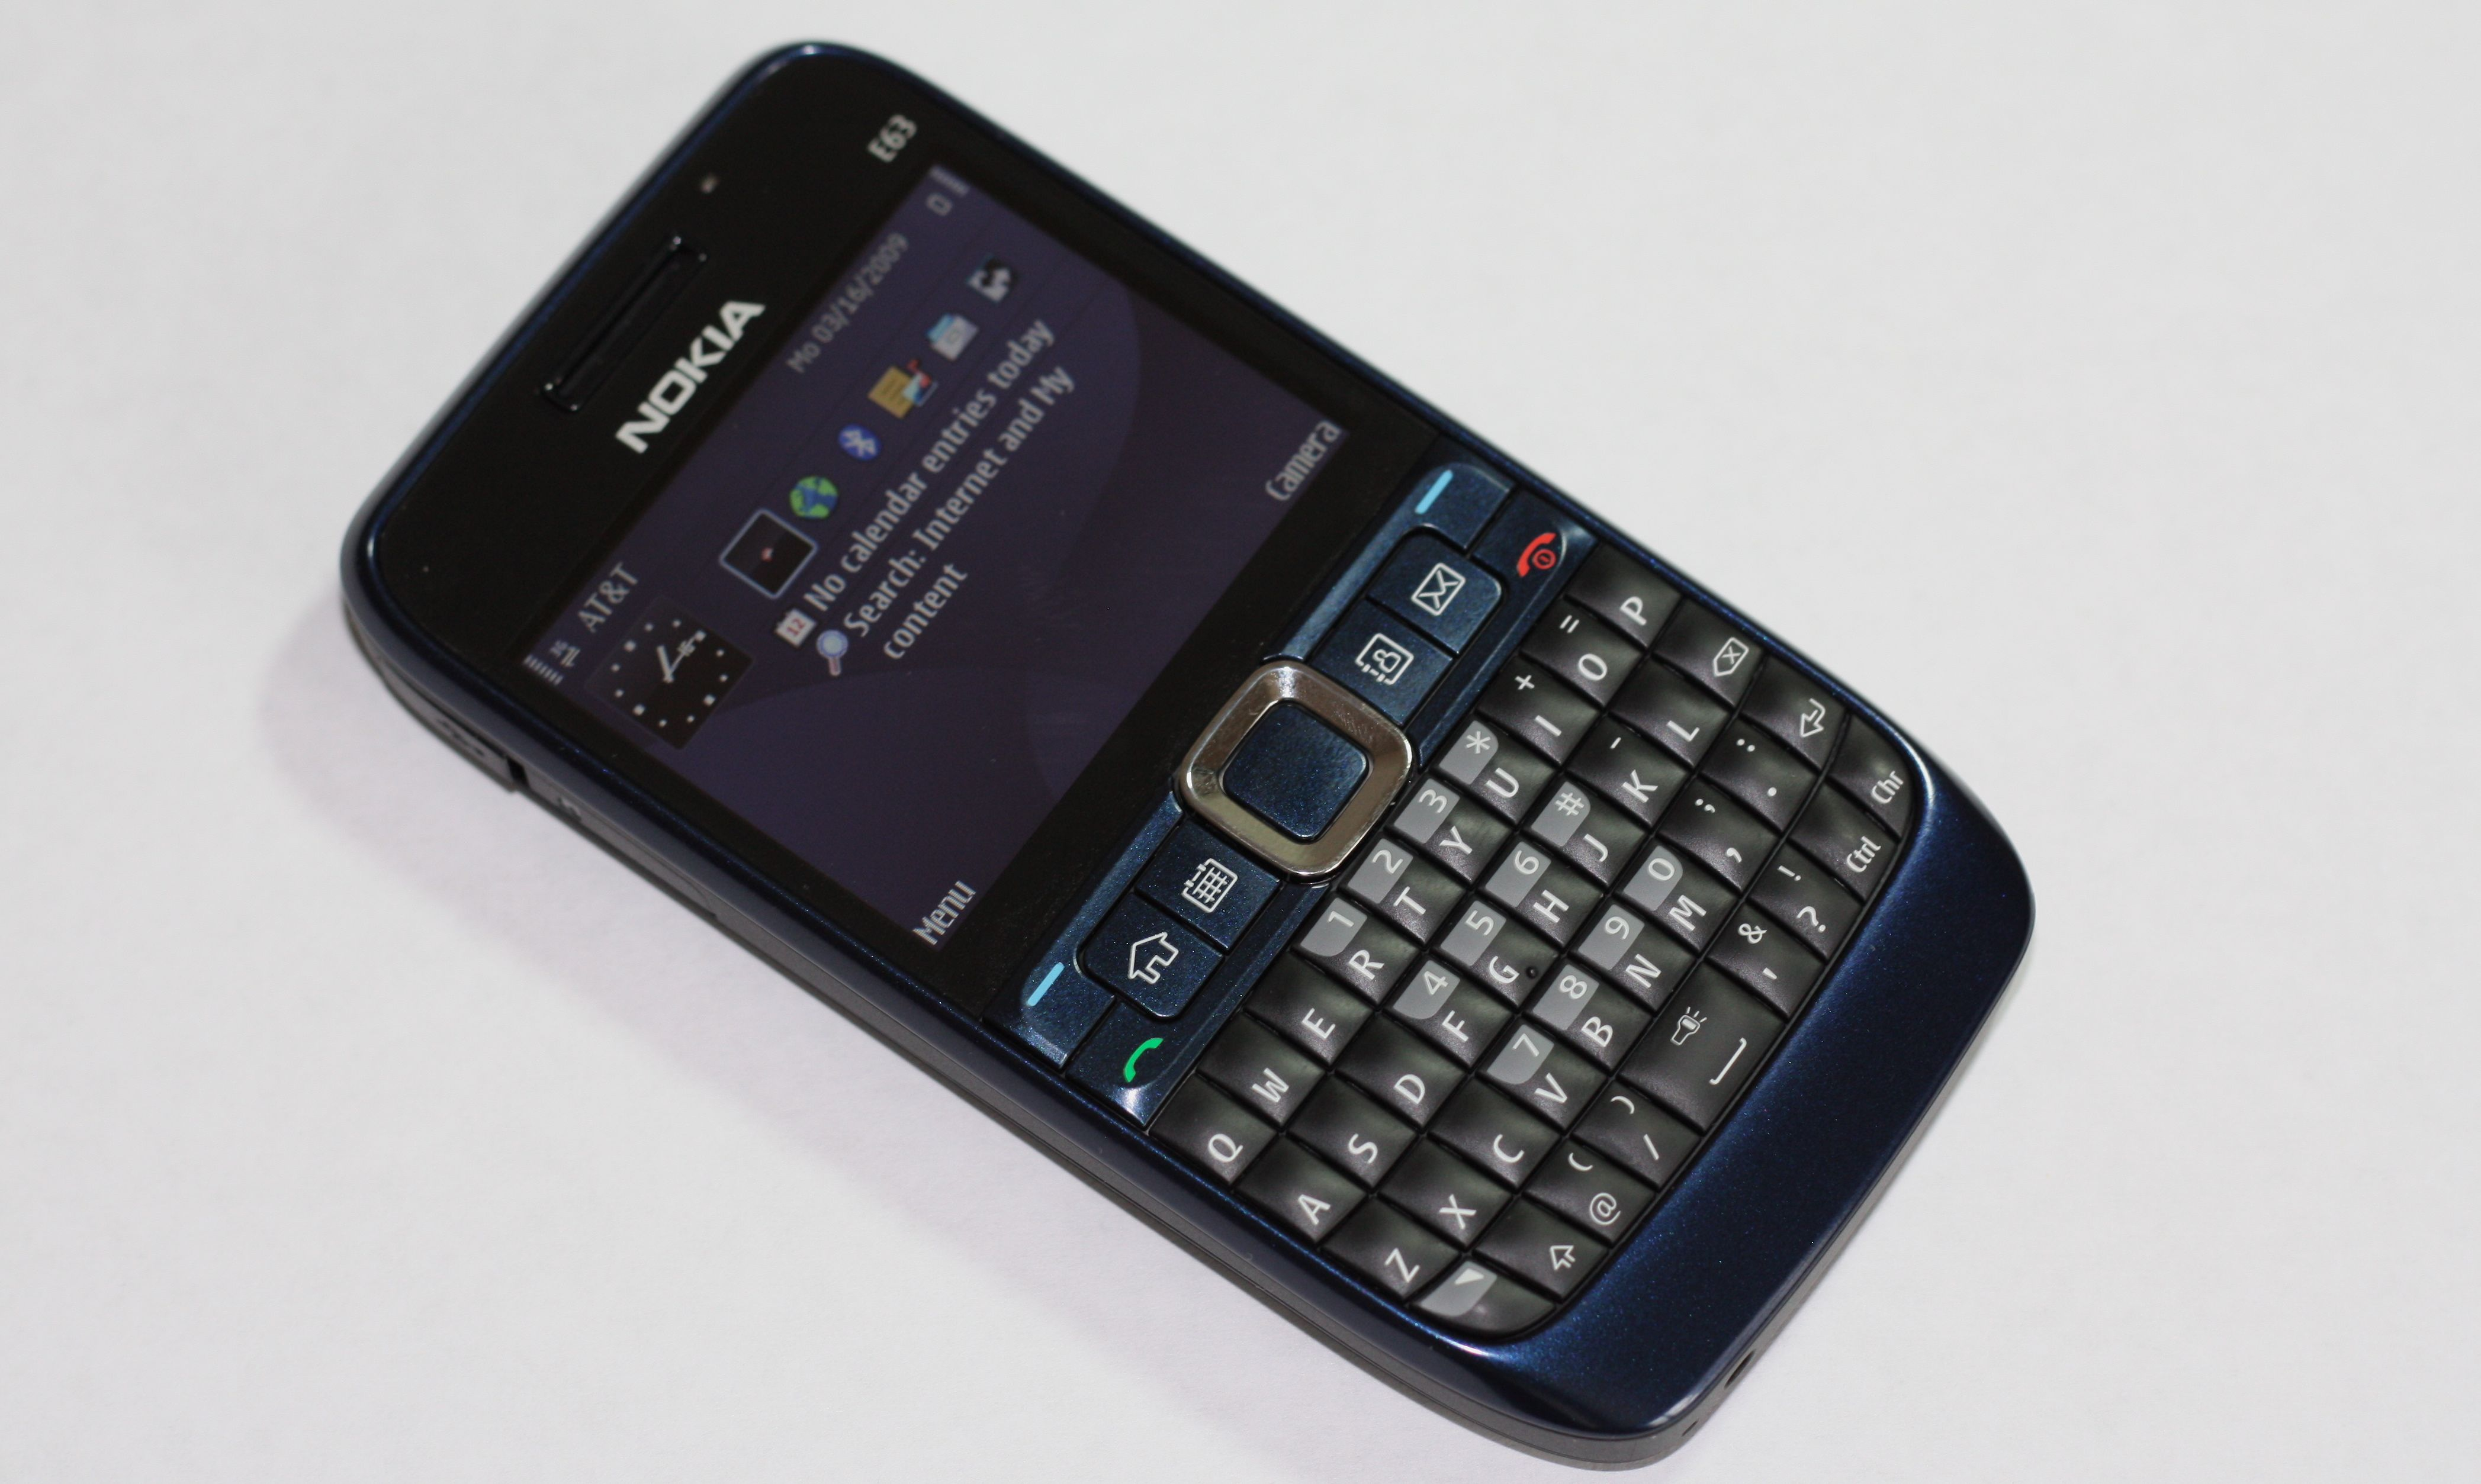 Download free photo editor for nokia e63 Form 13164-c numismatics